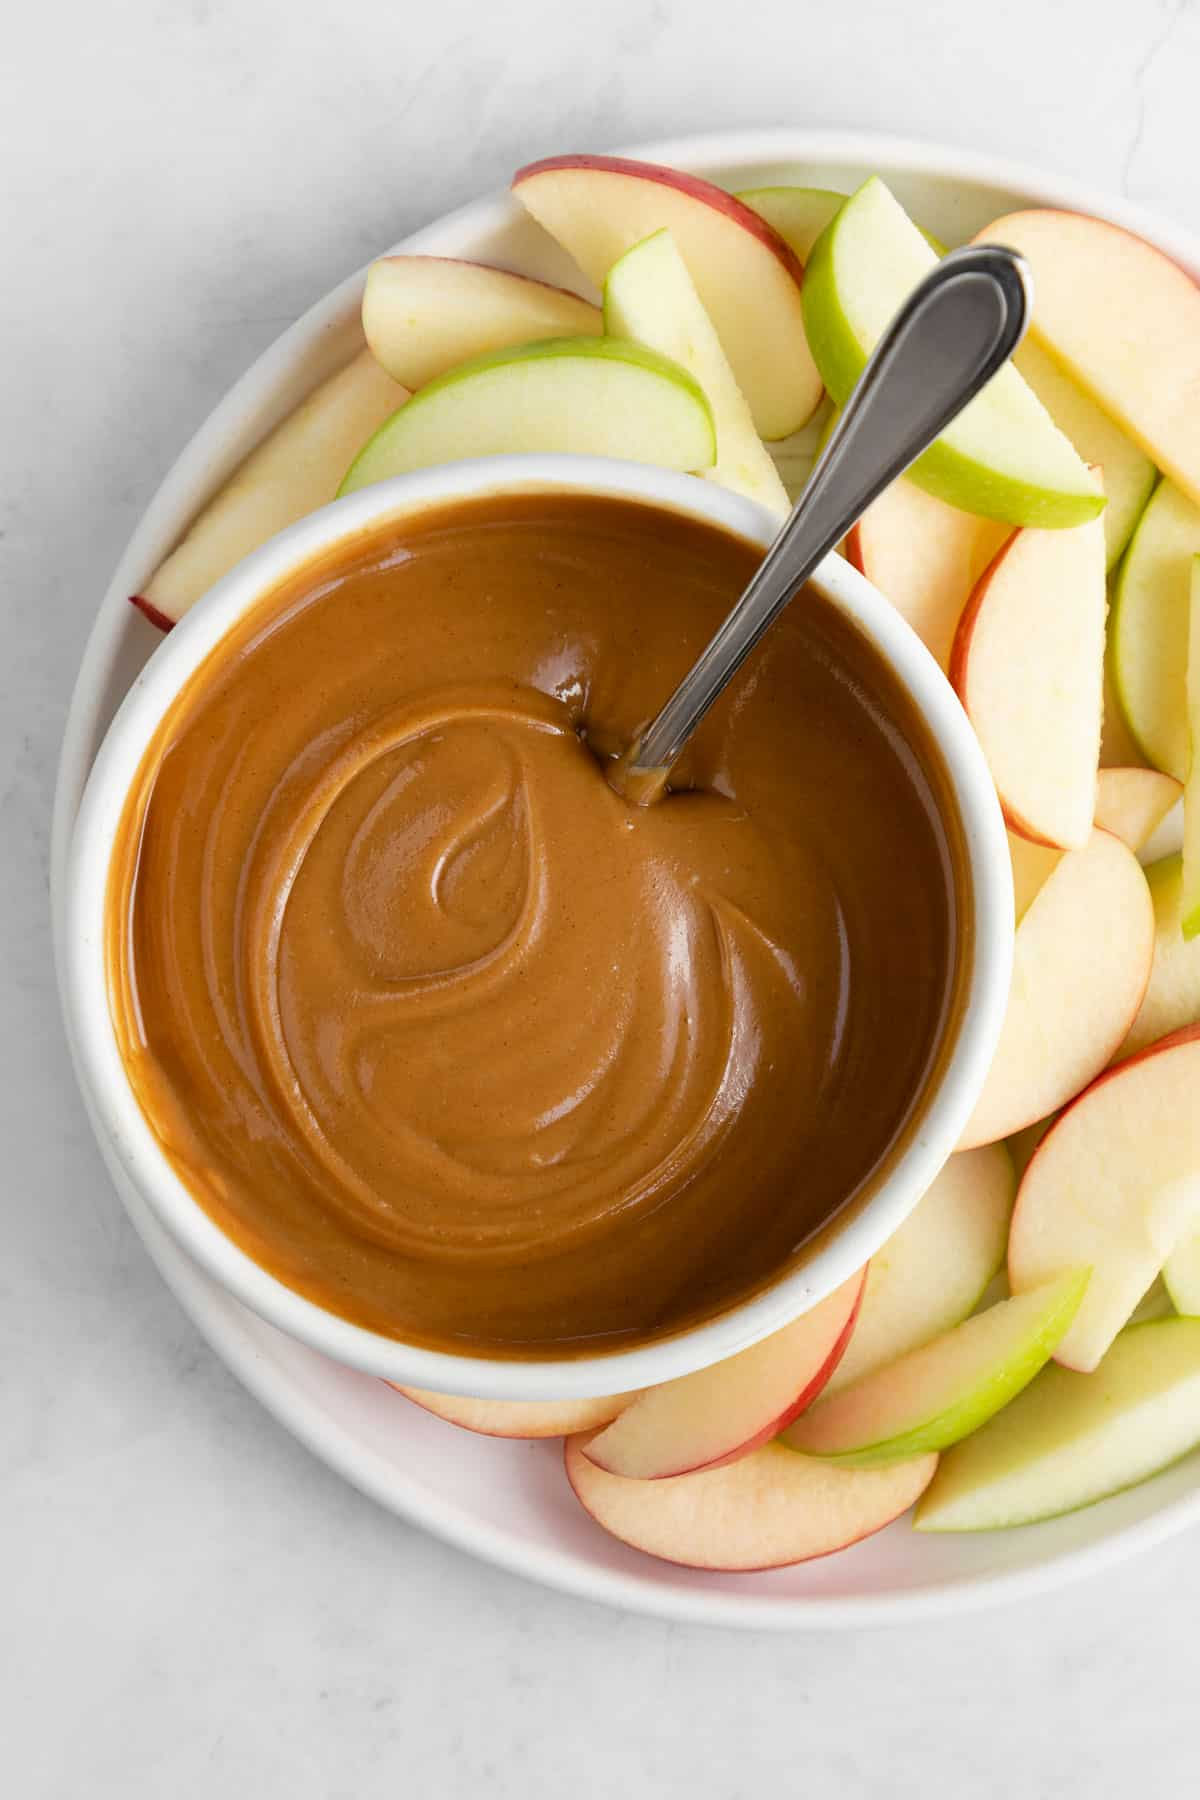 healthy caramel dip in a white bowl with a spoon surrounded by apple slices